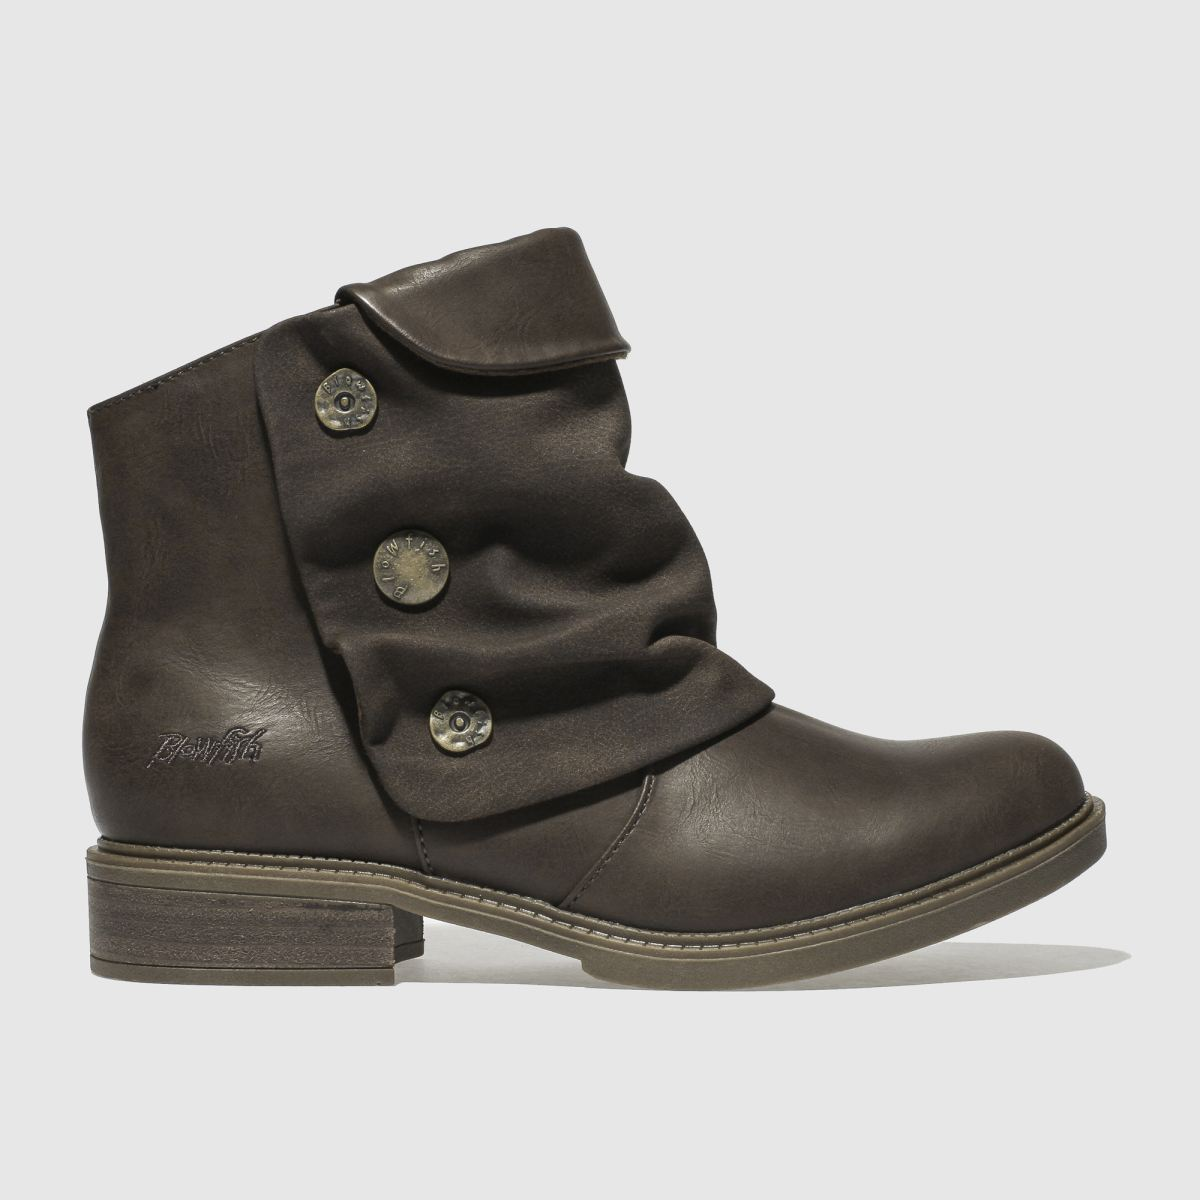 Blowfish Blowfish Brown Vynn Boots